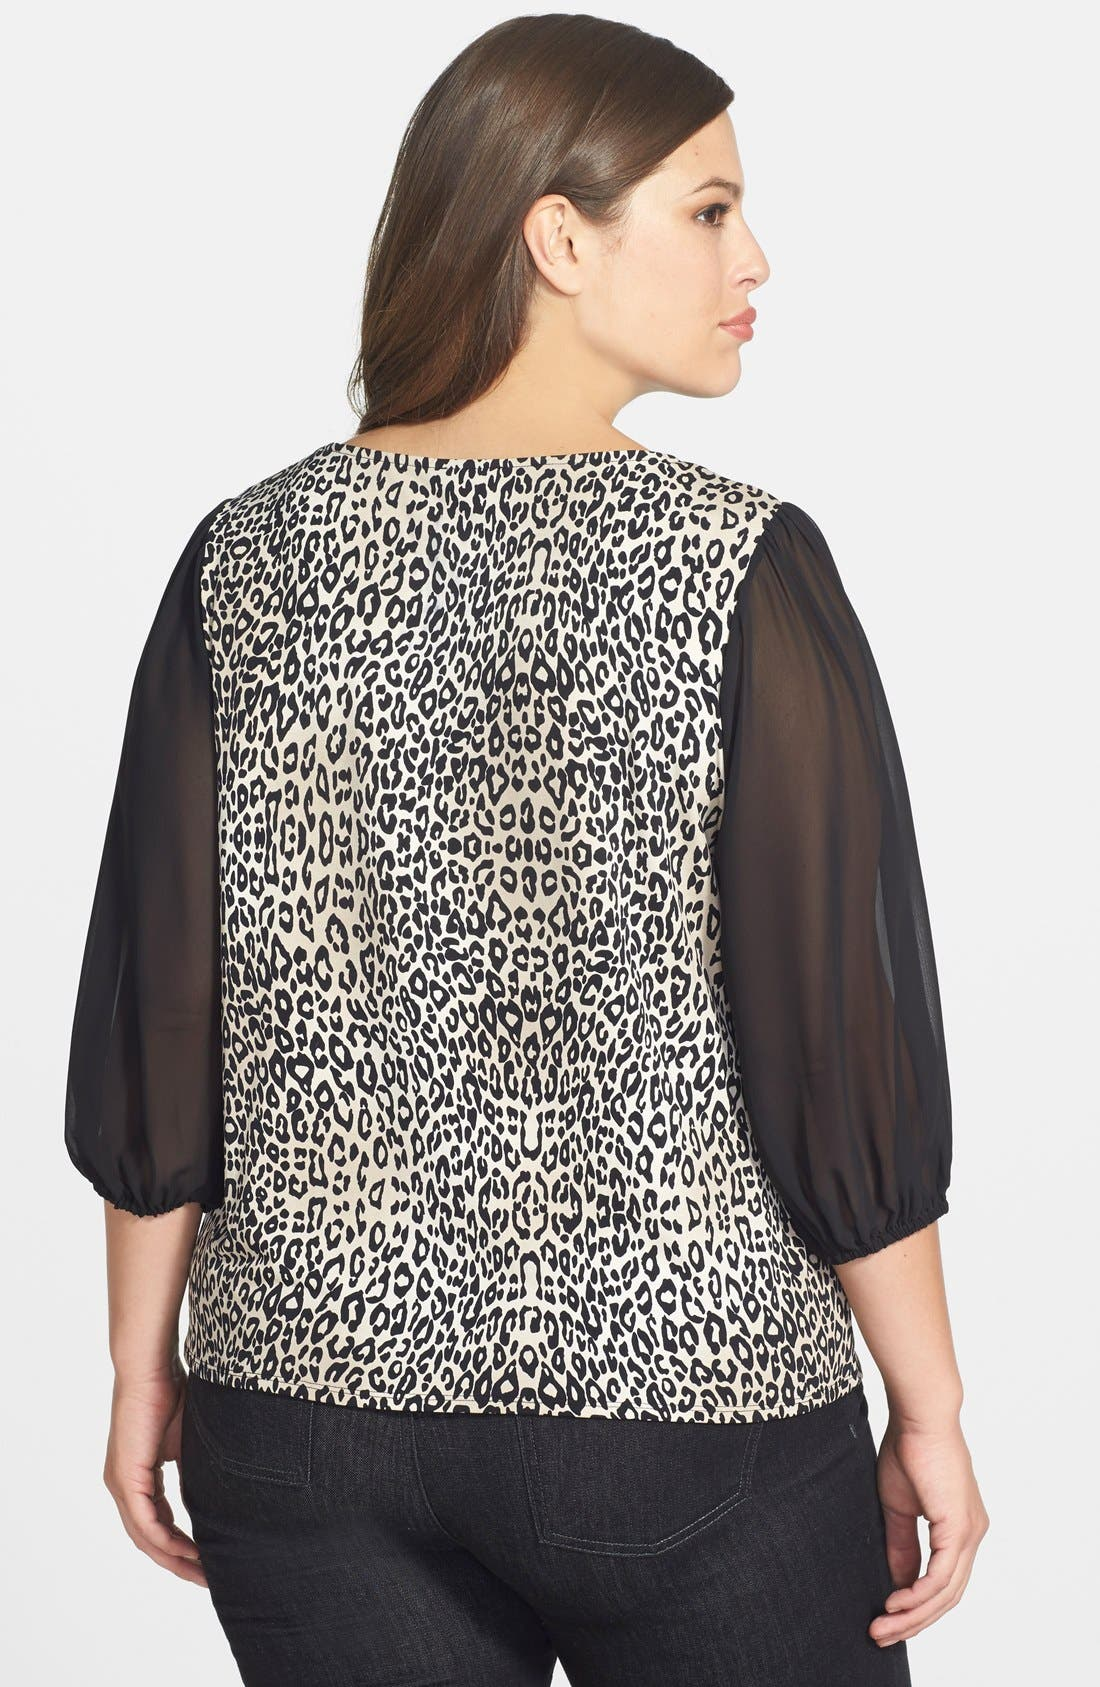 Alternate Image 2  - Vince Camuto 'Desert Leopard' Chiffon Sleeve Top (Plus Size)